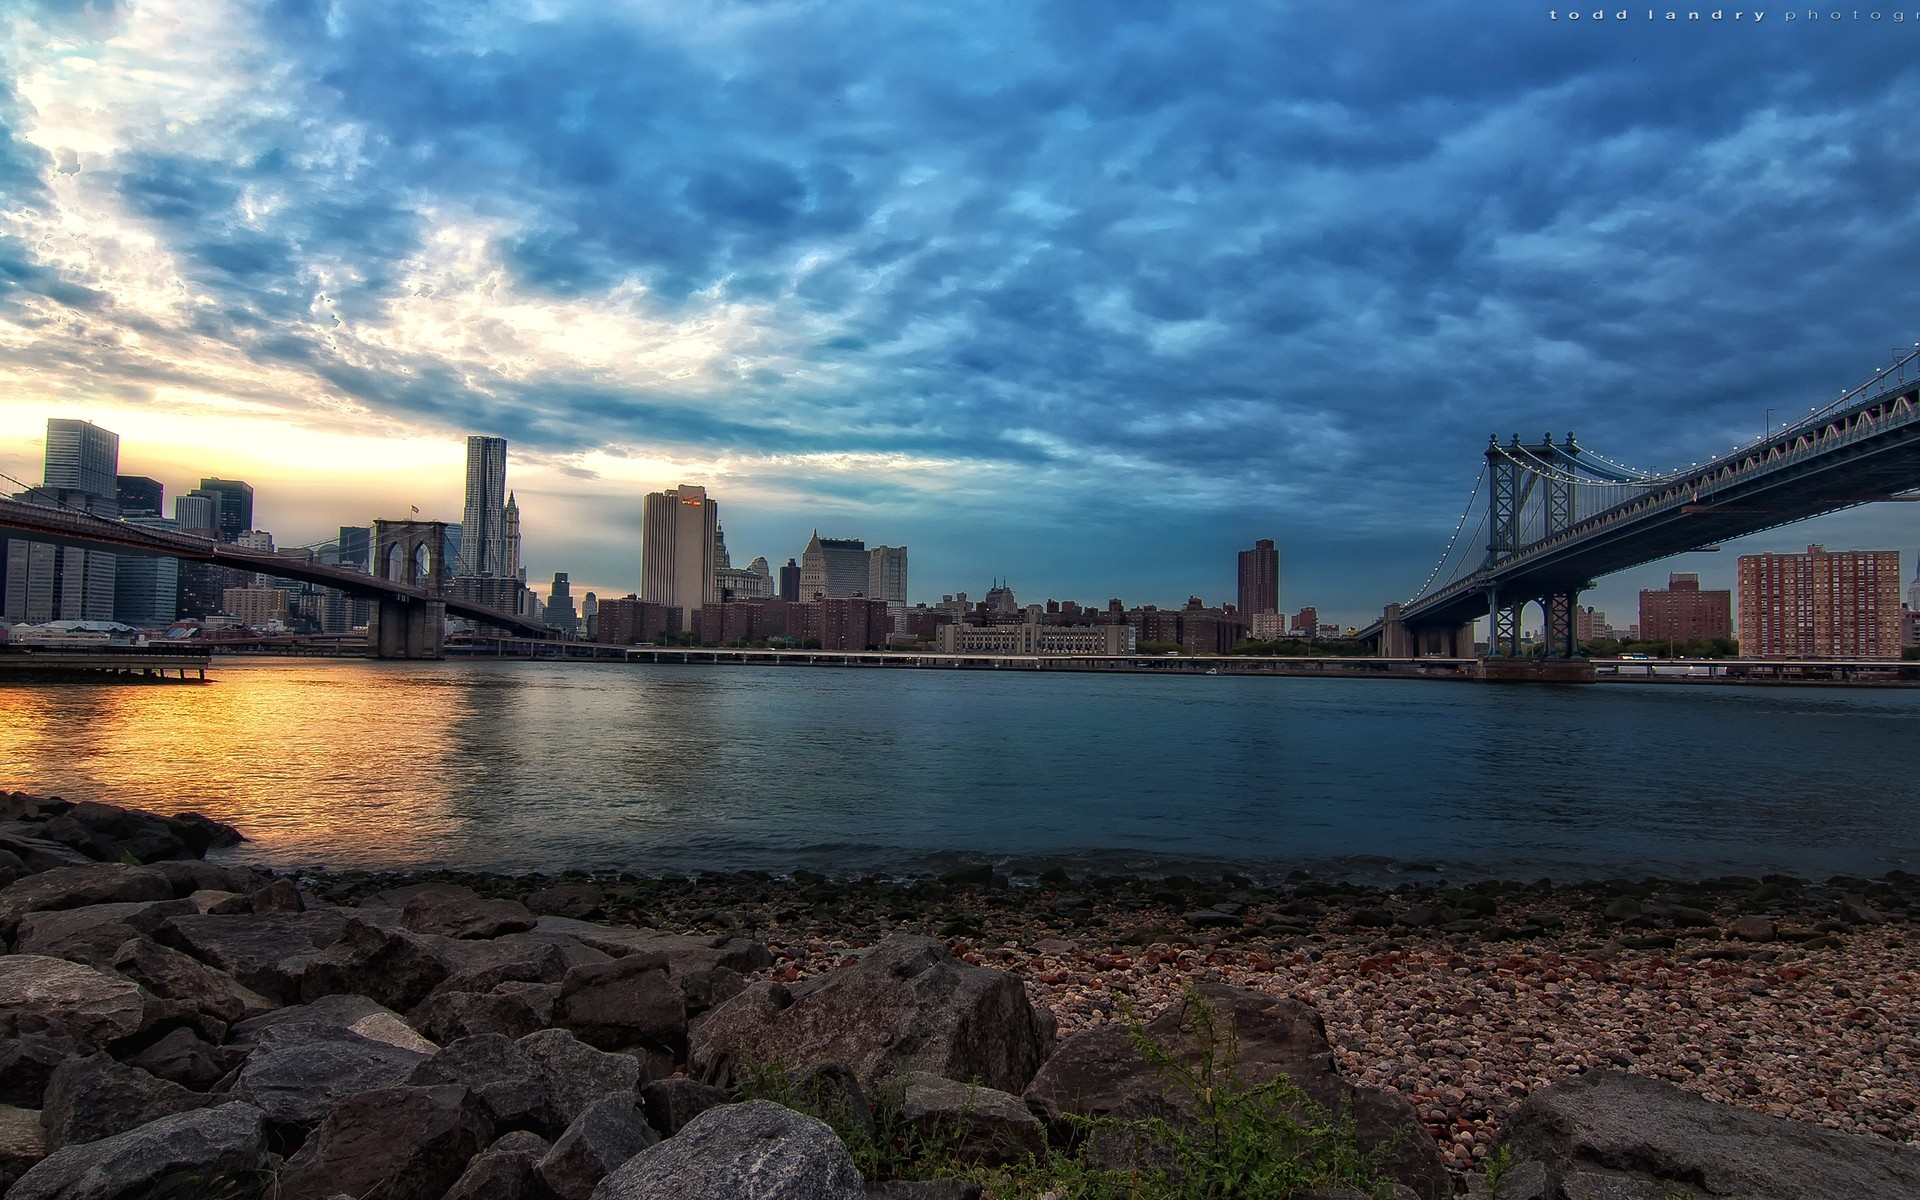 NYC Landscape IPhone Wallpapers For Free